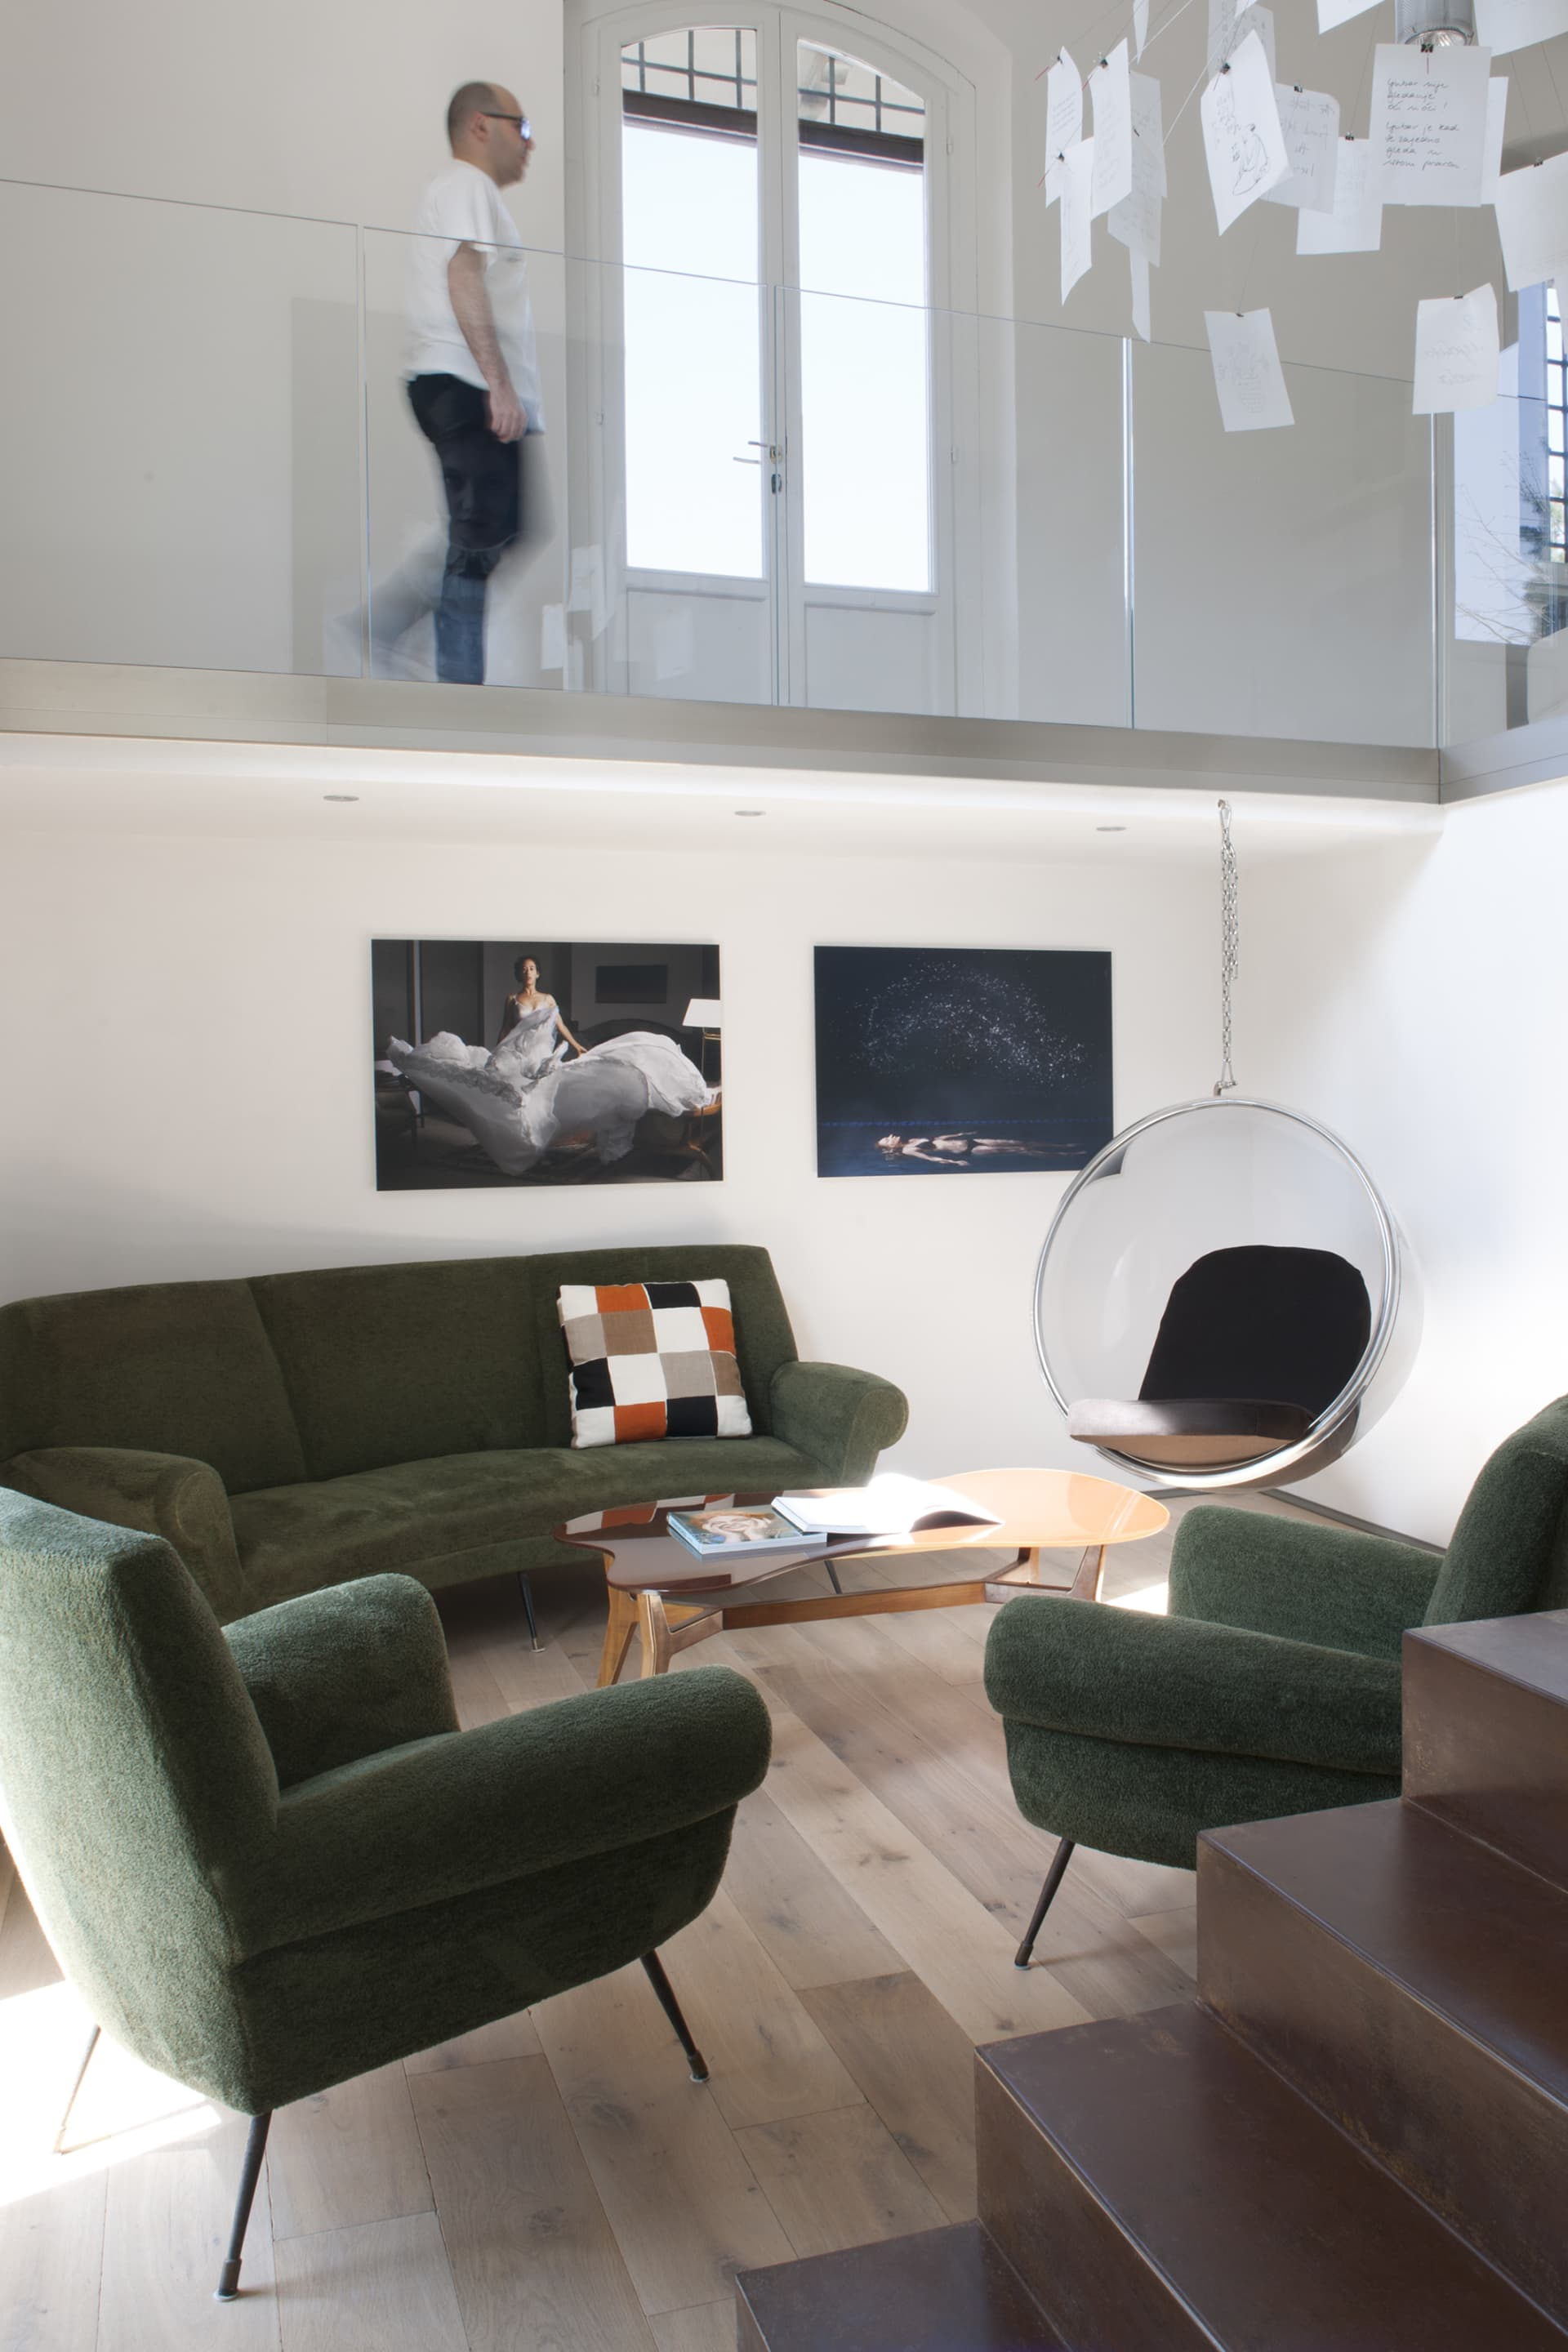 Bubble Chair by Eero Aarnio combined with vintage sofa and armchairs, and photographs on the wall by Margot Quand Knight.